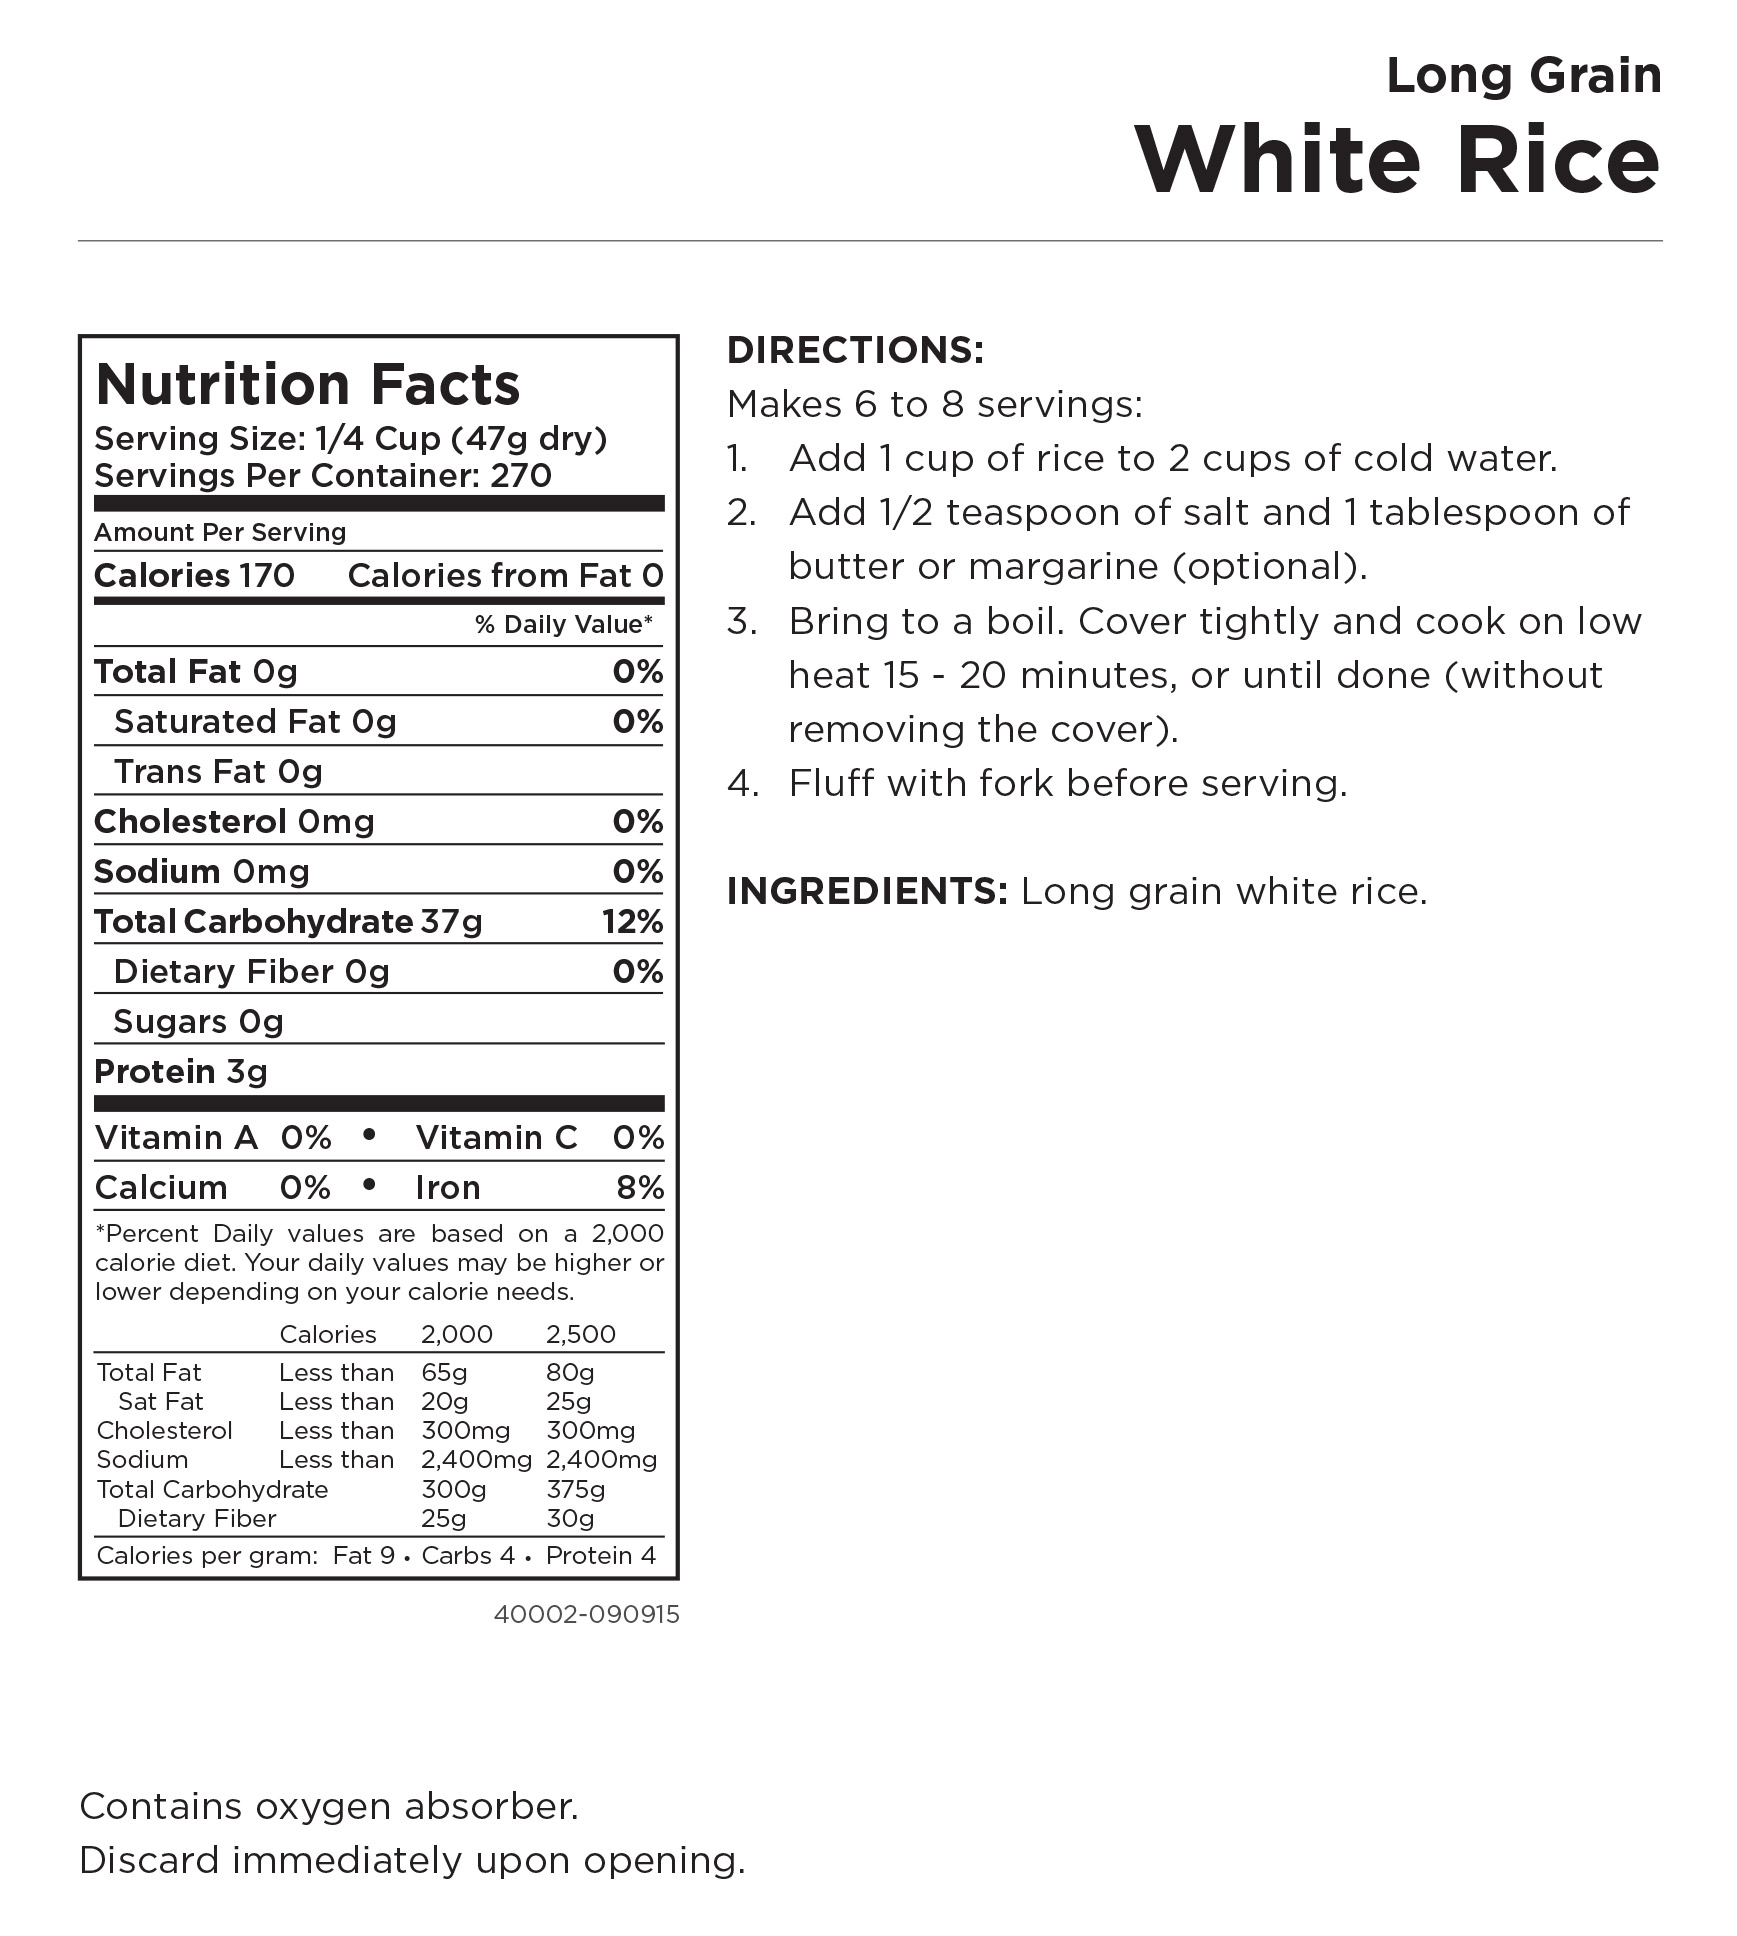 long-grain-white-rice-4-gal-nut-panel